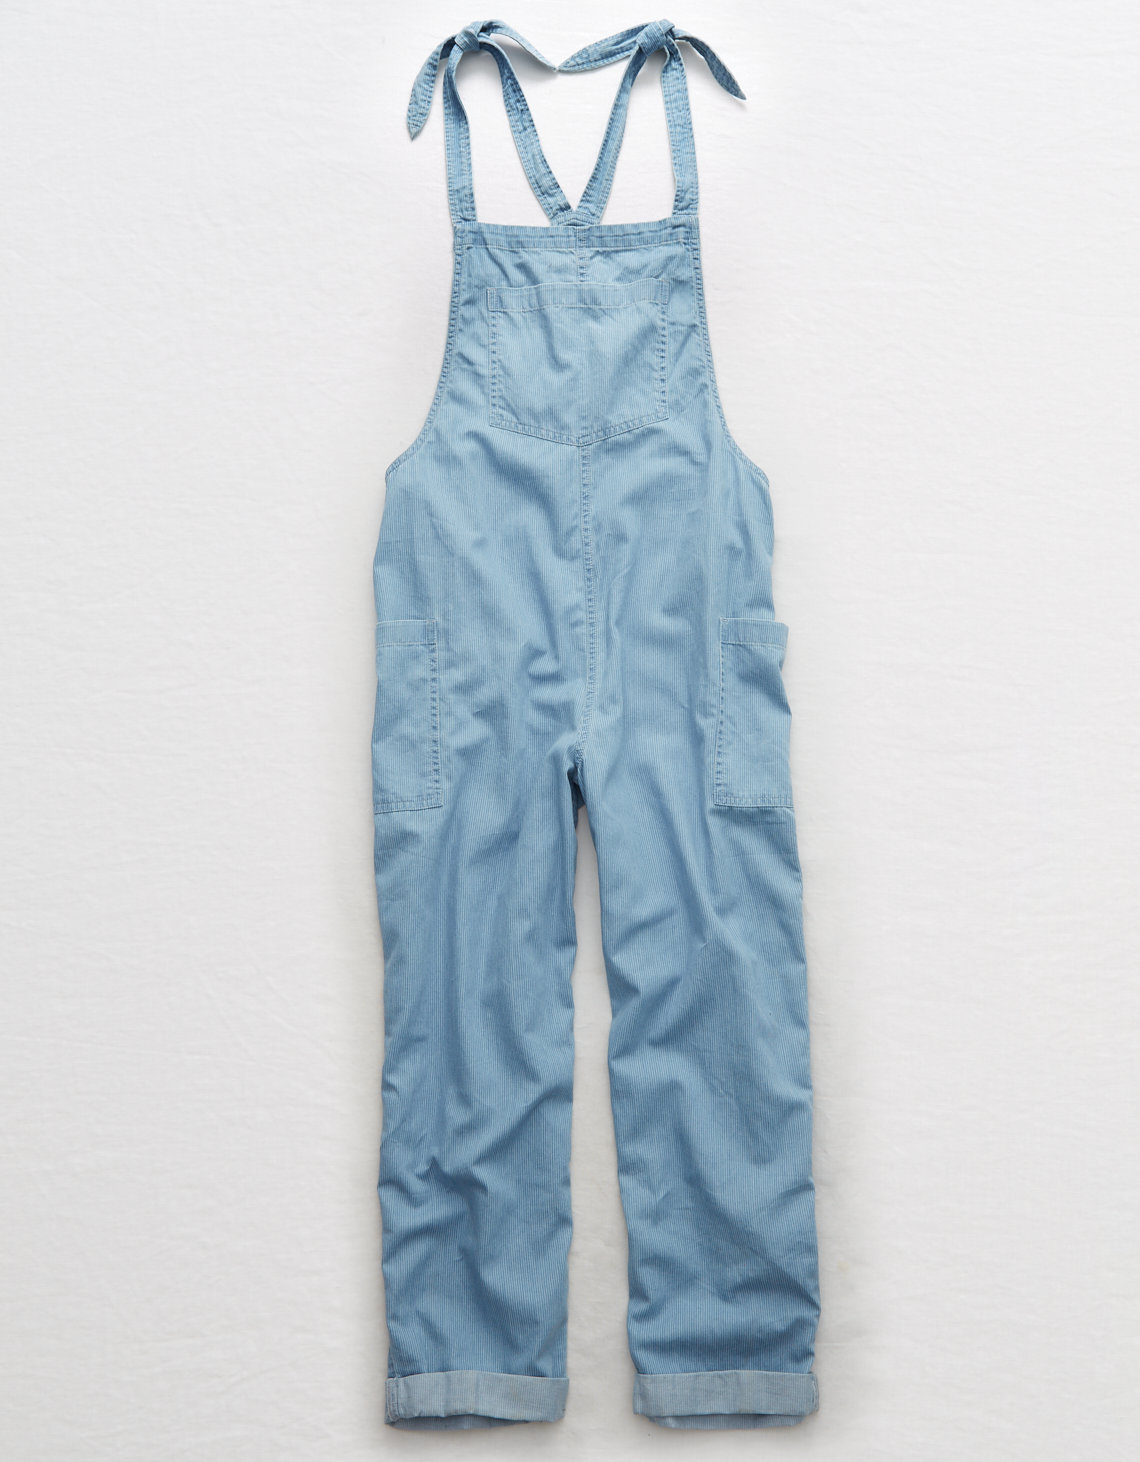 50c735a0f877 Aerie Shoulder Tie Overalls. Placeholder image. Product Image